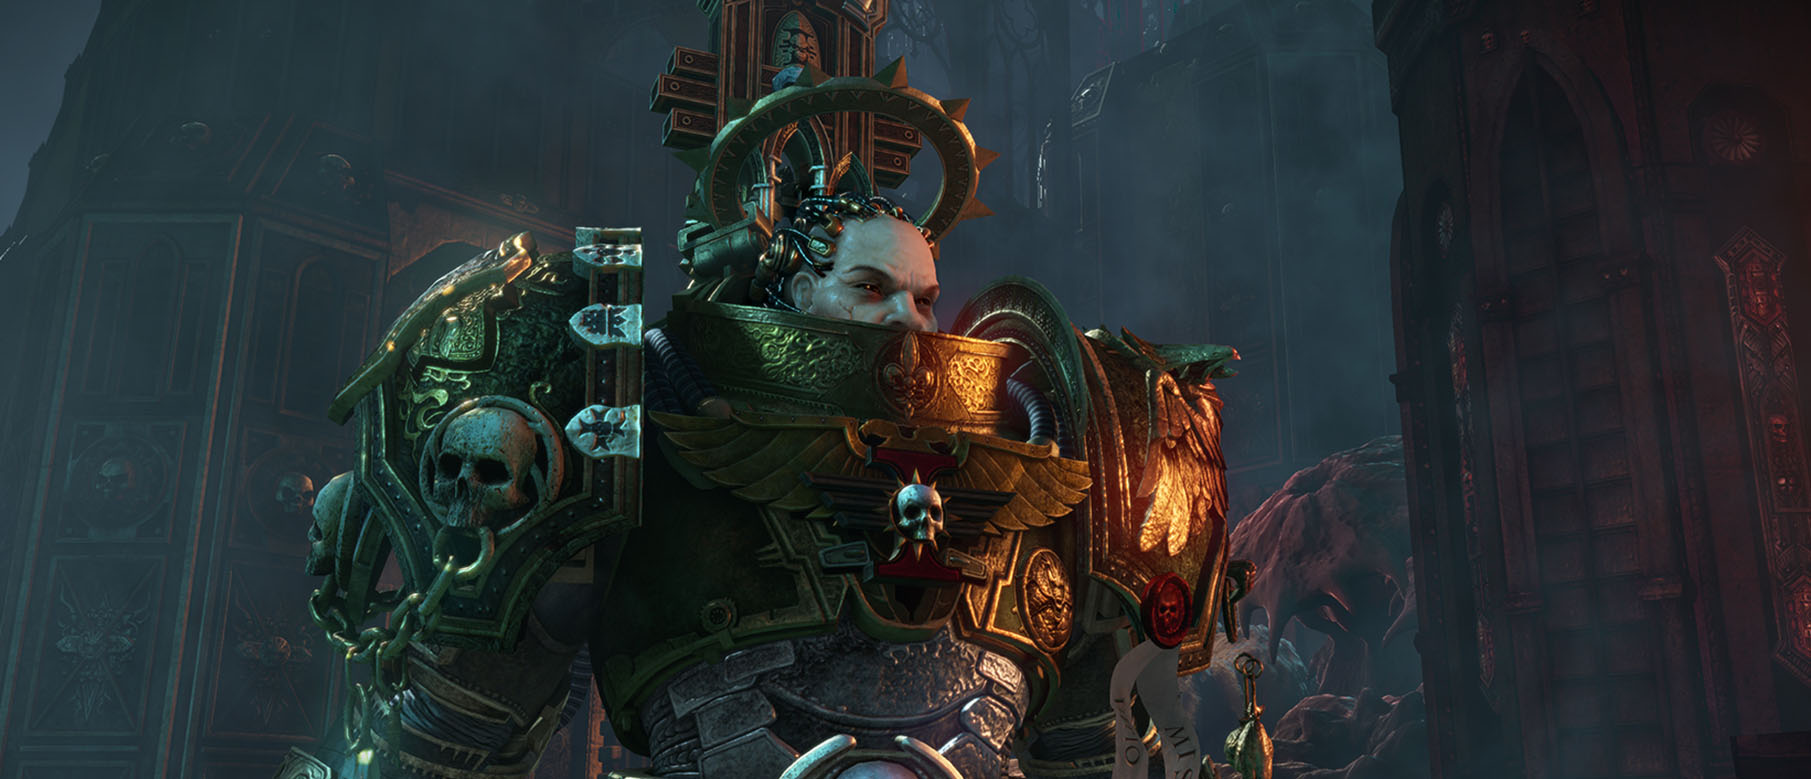 Изображение к Скоро вы сами сможете опробовать Warhammer 40,000: Inquisitor – Martyr